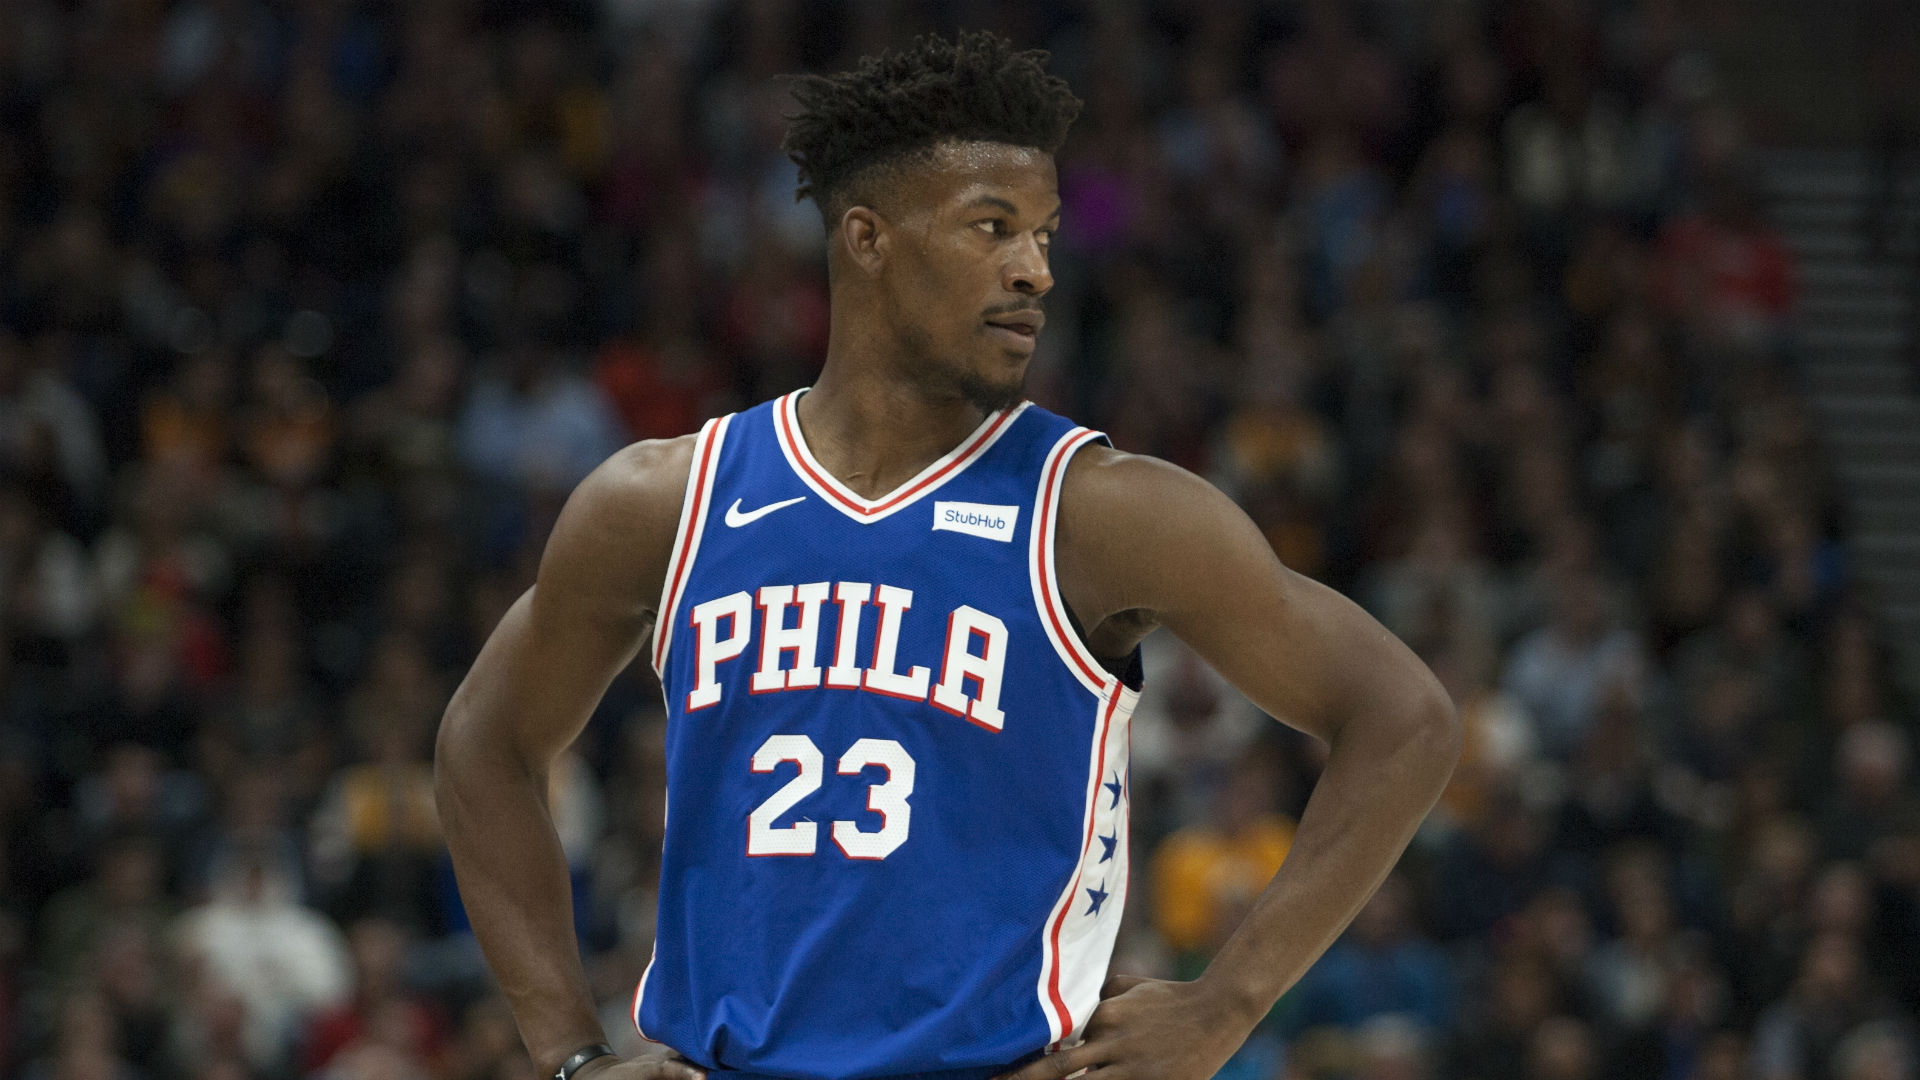 Jimmy Butler challenging Brett Brown, 76ers' offensive system